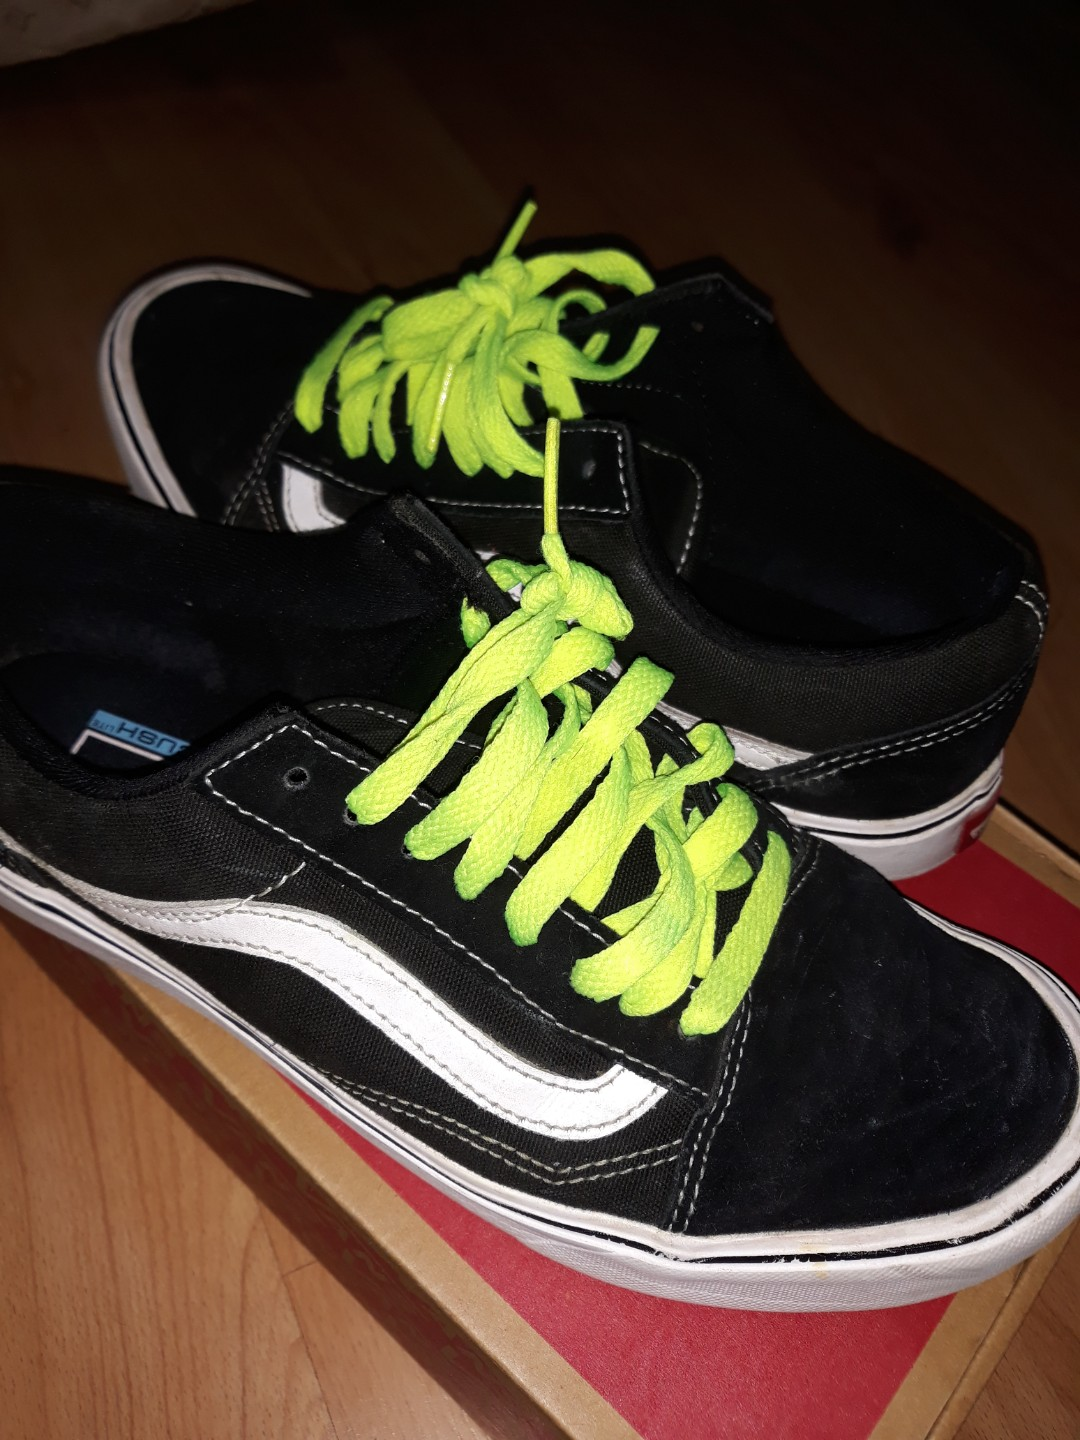 30f1e292dd Vans Sneakers Ultracush and extra light with customised water repel ...